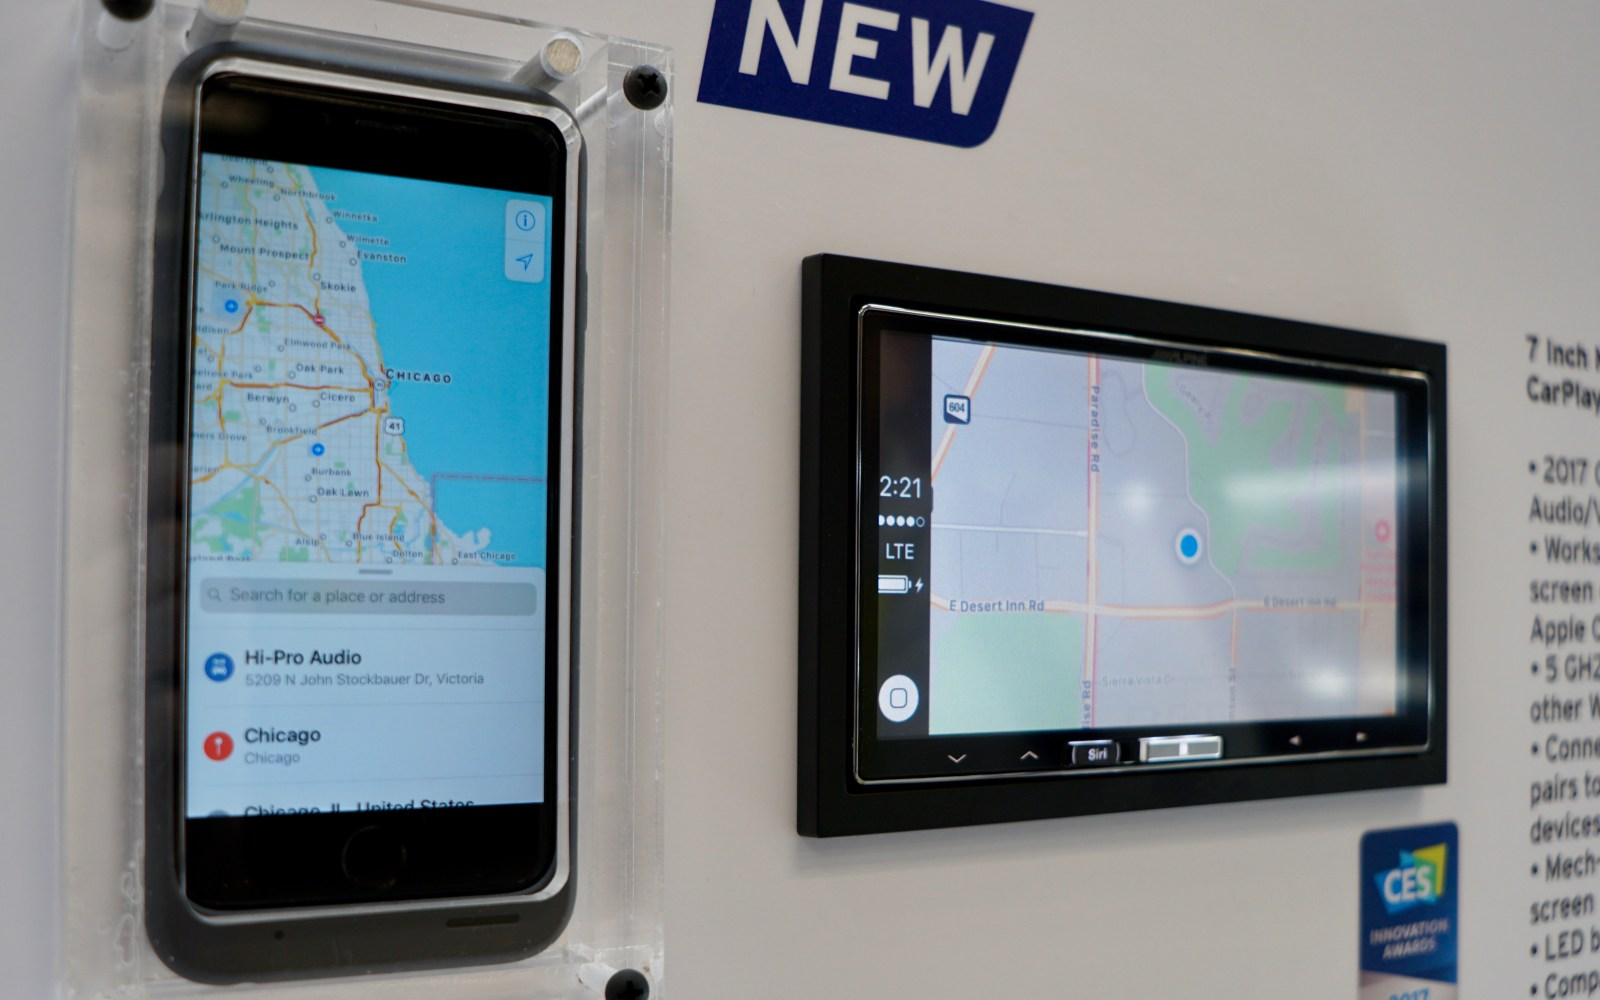 Hands-on: Wireless CarPlay arrives in Alpine's iLX-107 aftermarket receiver [Video]